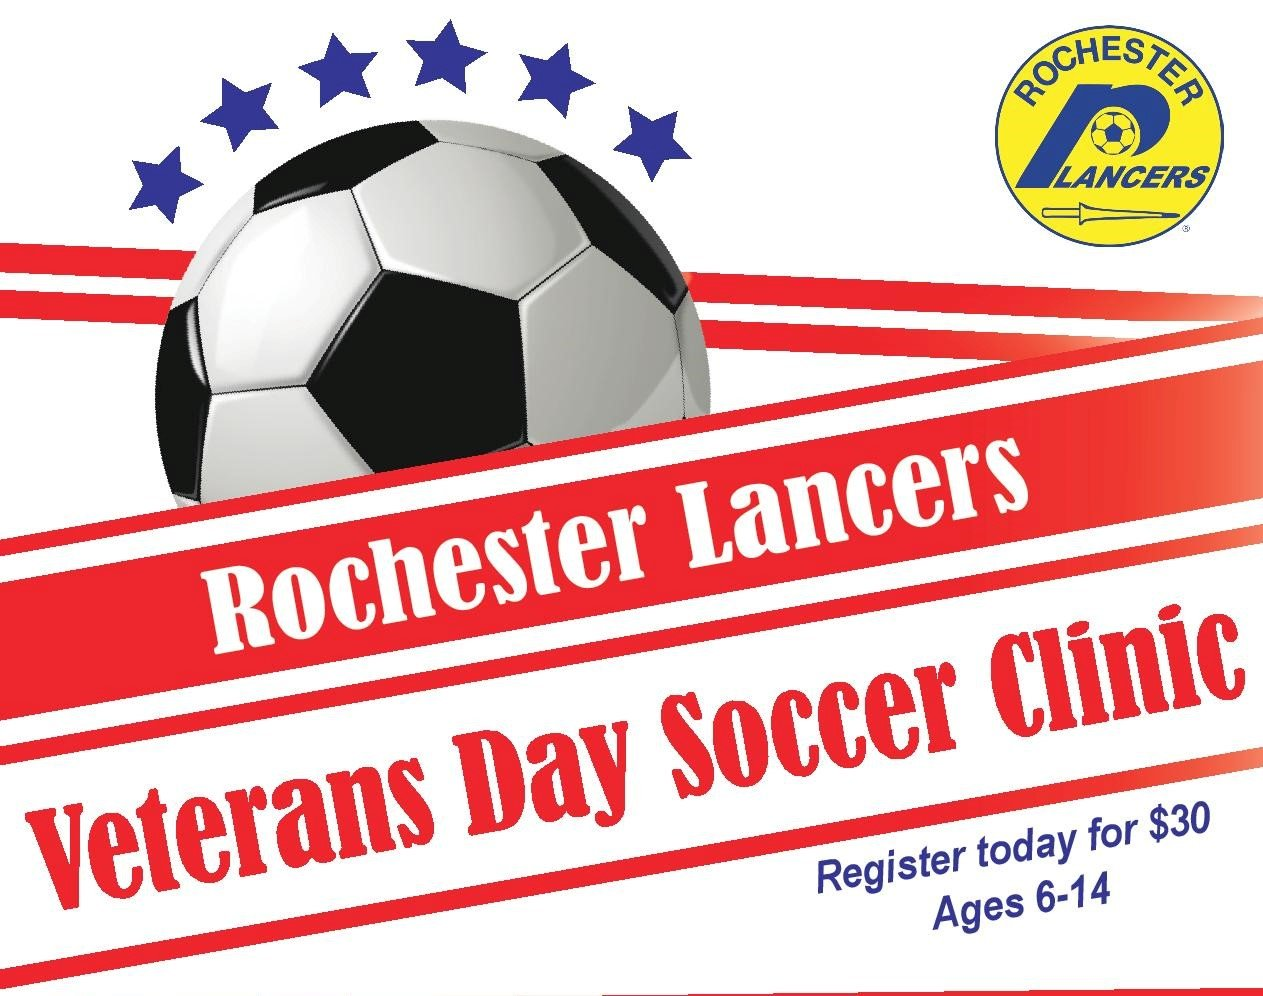 VETERAN'S DAY CLINIC